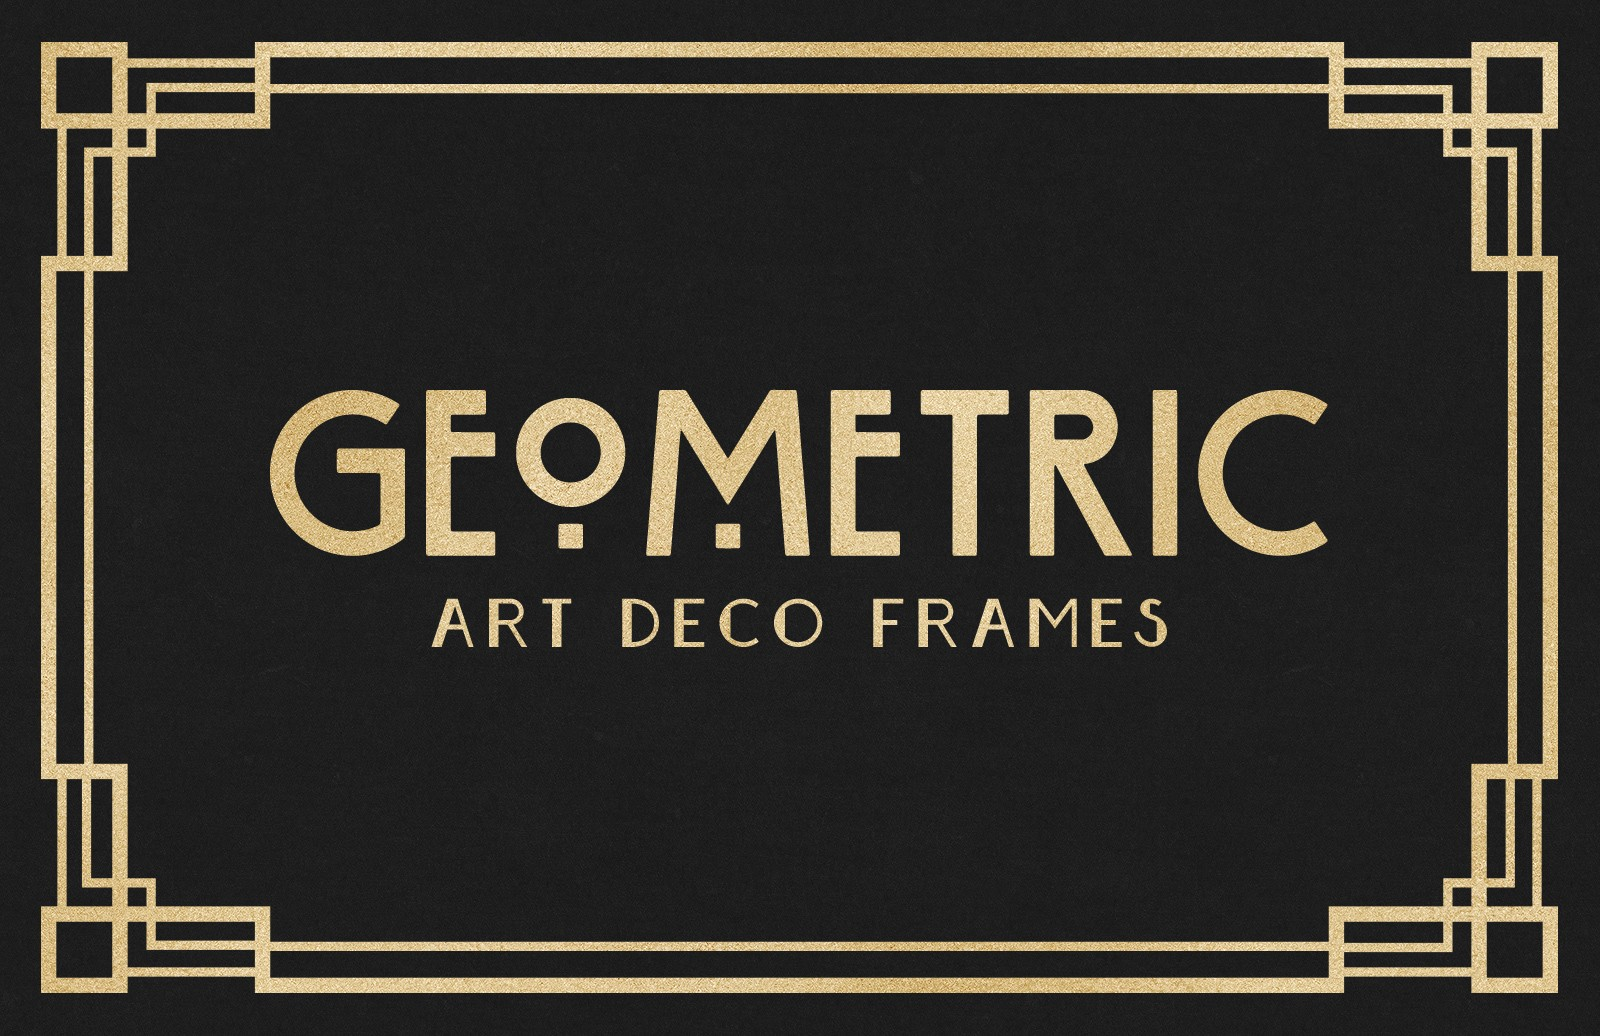 Geometric Art Deco Frames